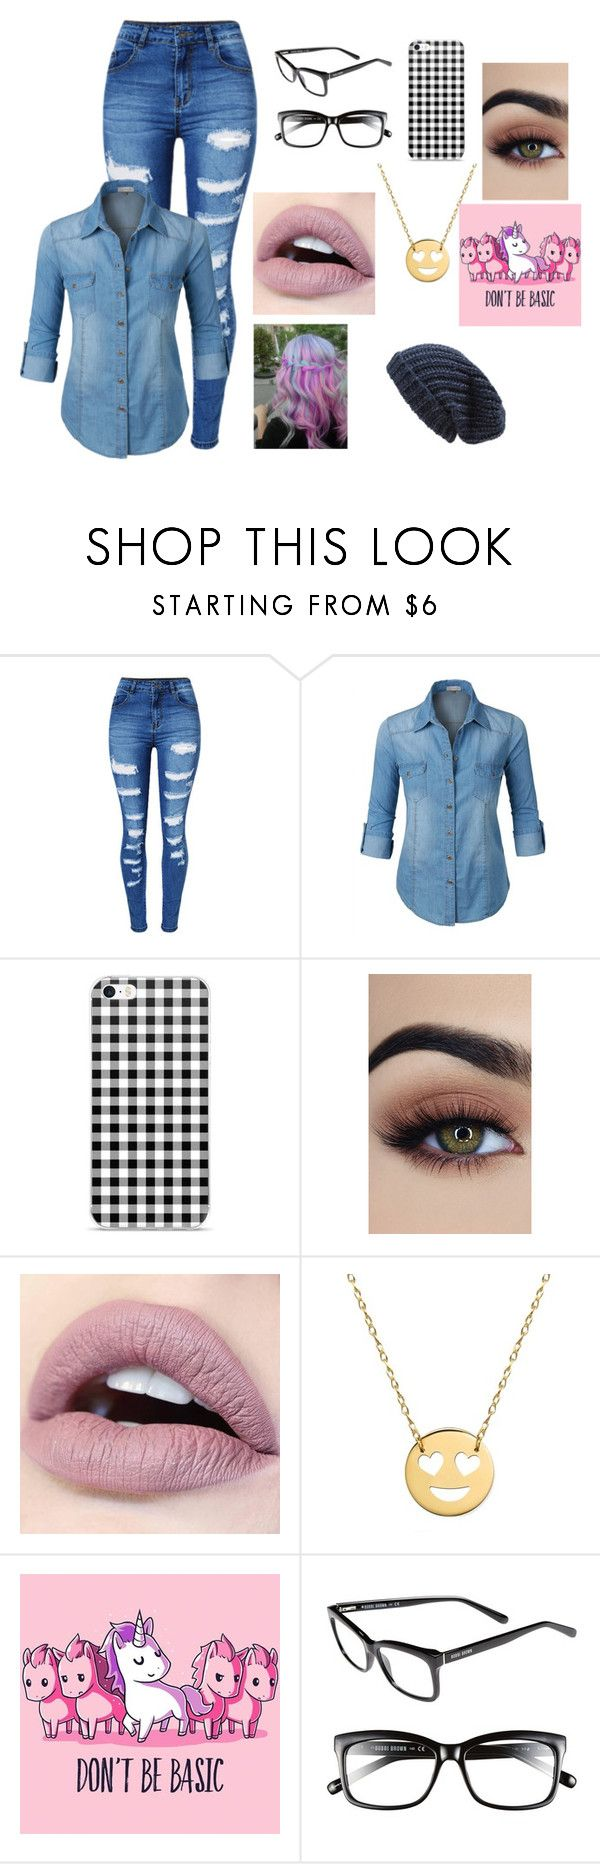 """""""Jaiden Smith #5"""" by maya-fischbach on Polyvore featuring WithChic, LE3NO, Jane Basch, Bobbi Brown Cosmetics and Phase 3"""